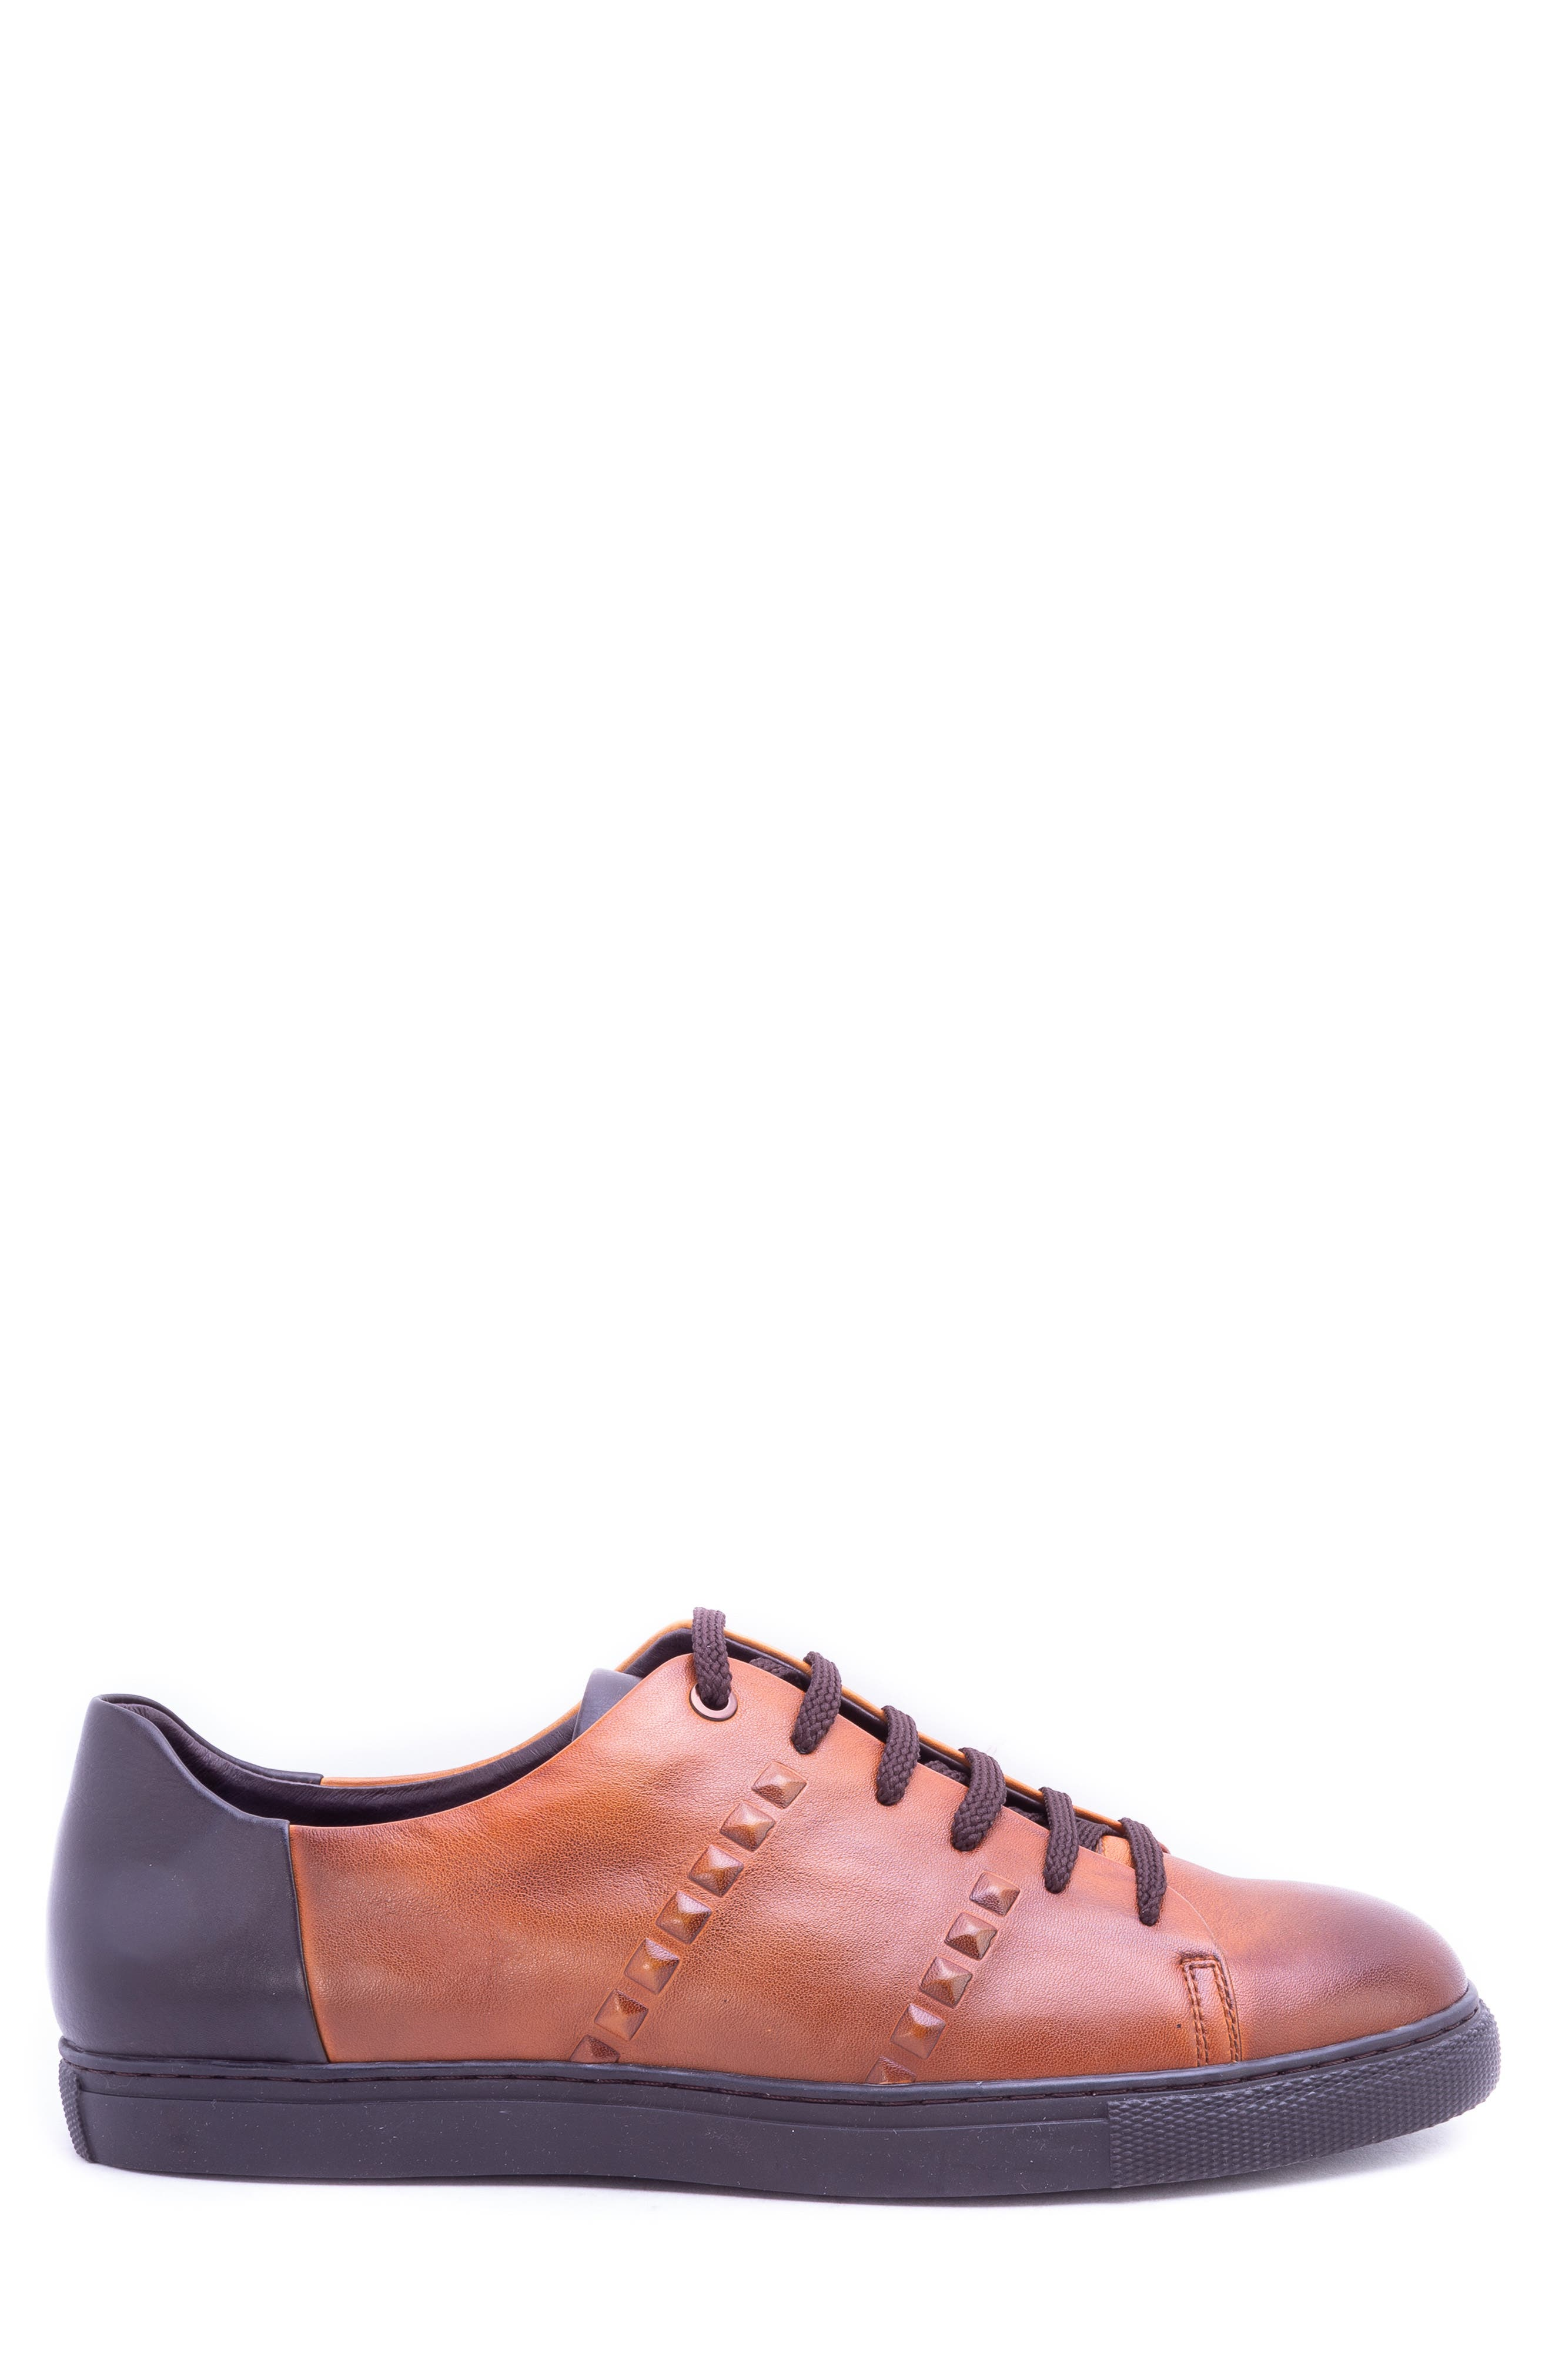 Strozzi Studded Sneaker,                             Alternate thumbnail 3, color,                             COGNAC LEATHER